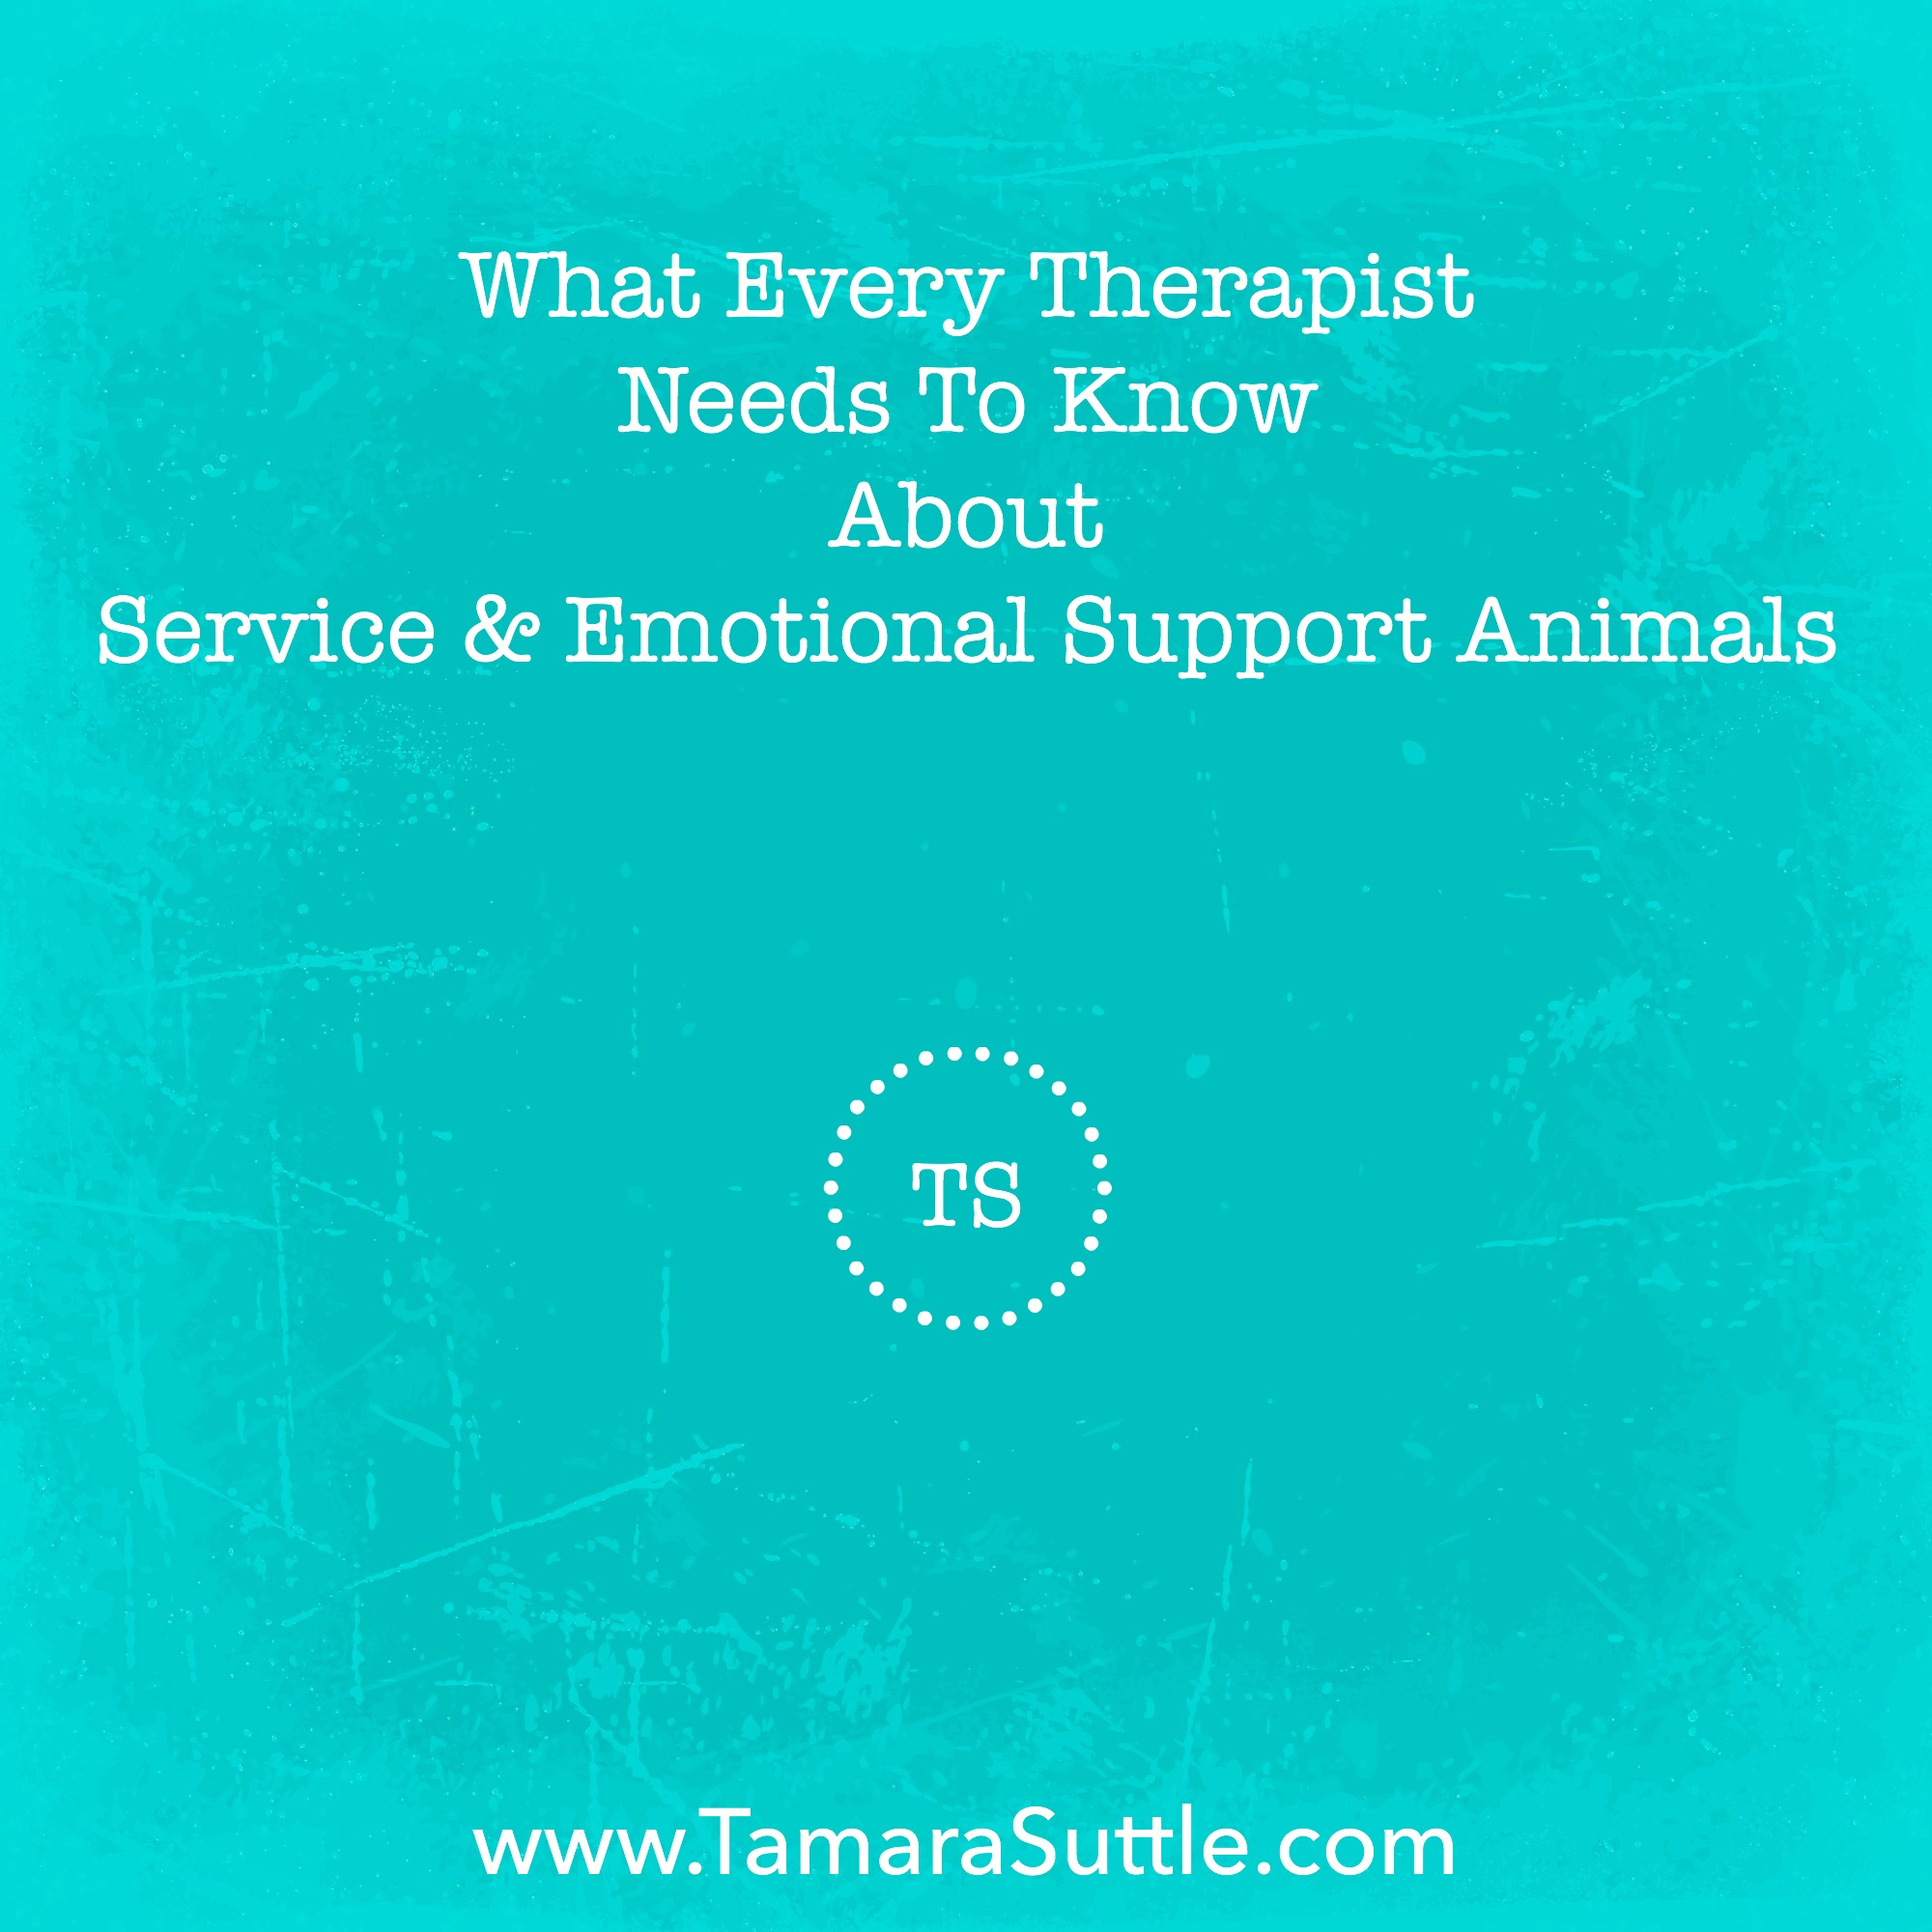 What Every Therapist Needs To Know About Service And